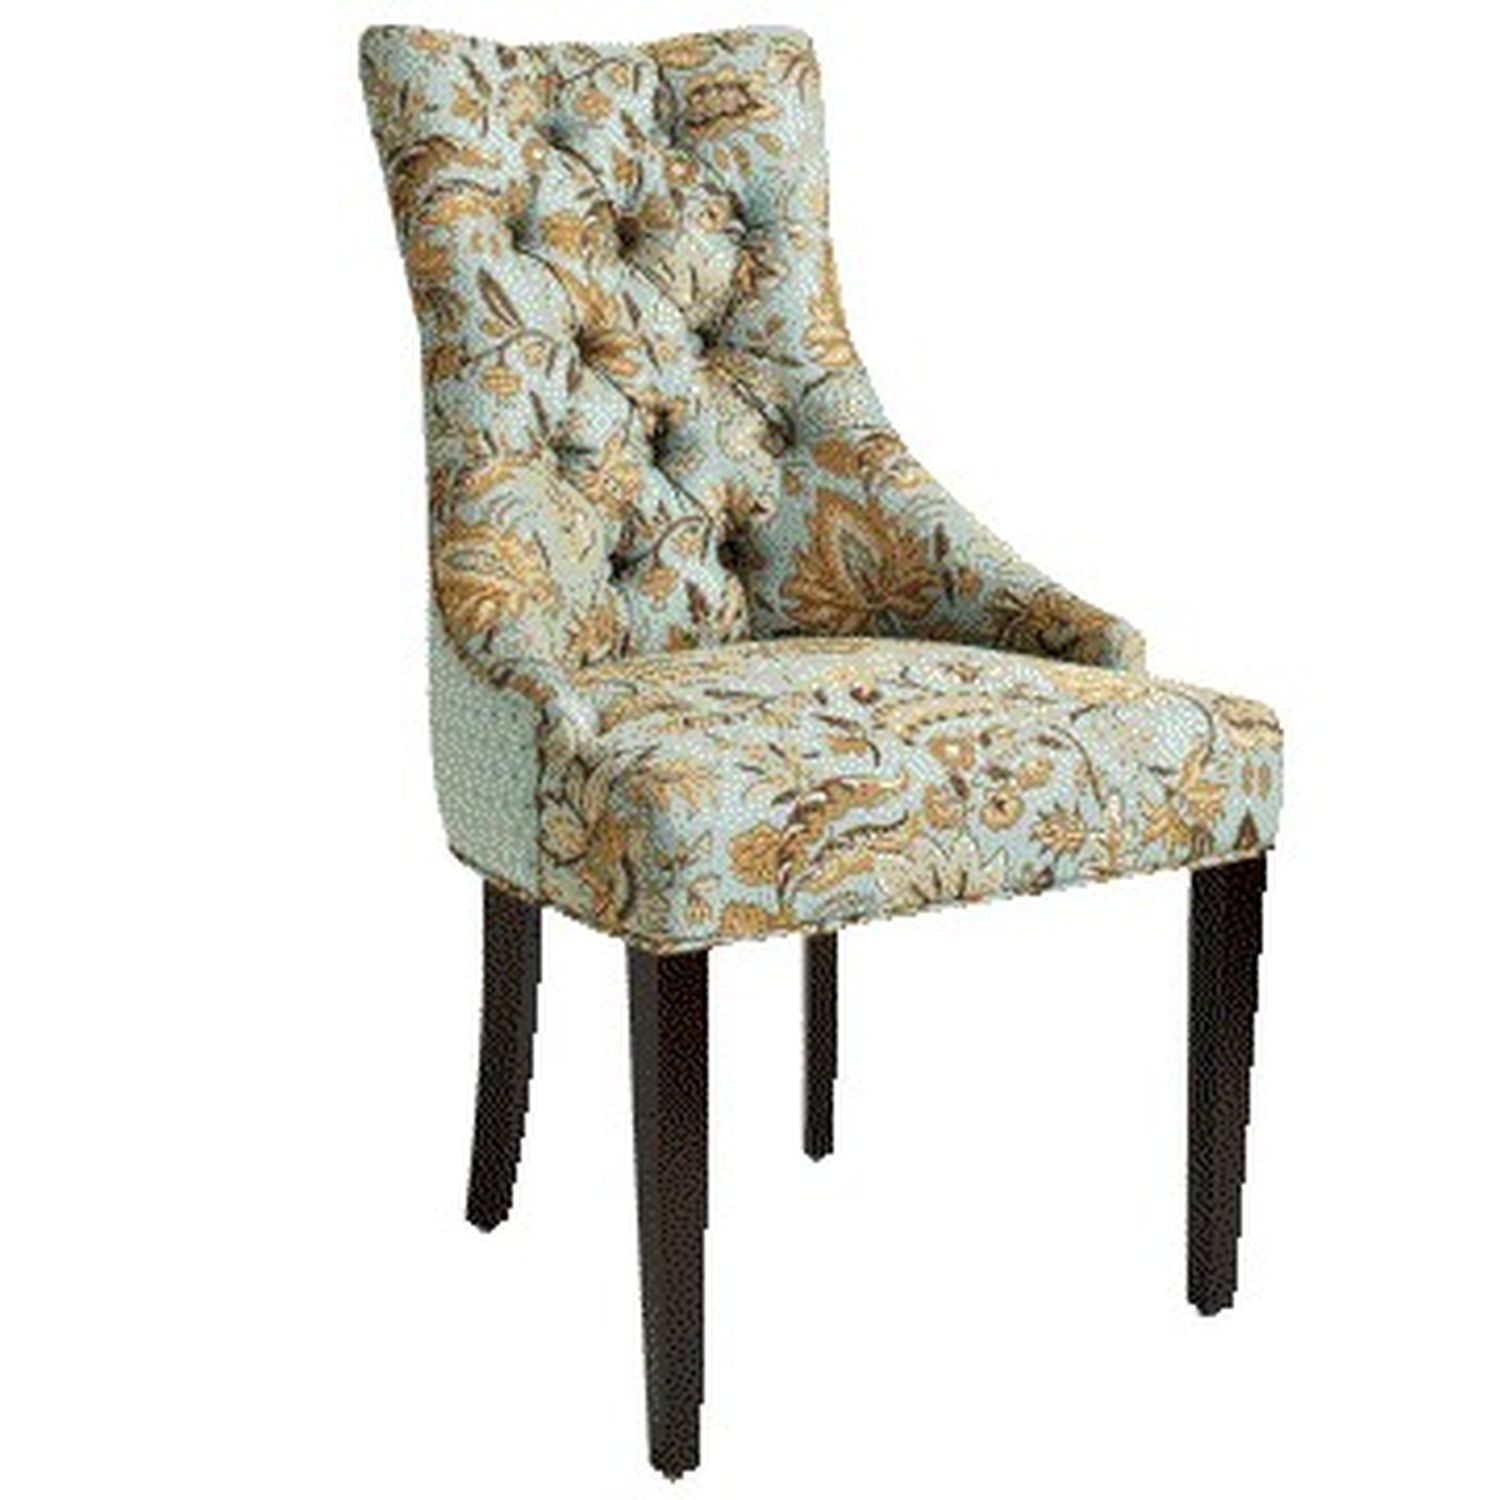 Craigslist Dc Accent Chair: Dining Table End Chairs. Laurier Dining Chair